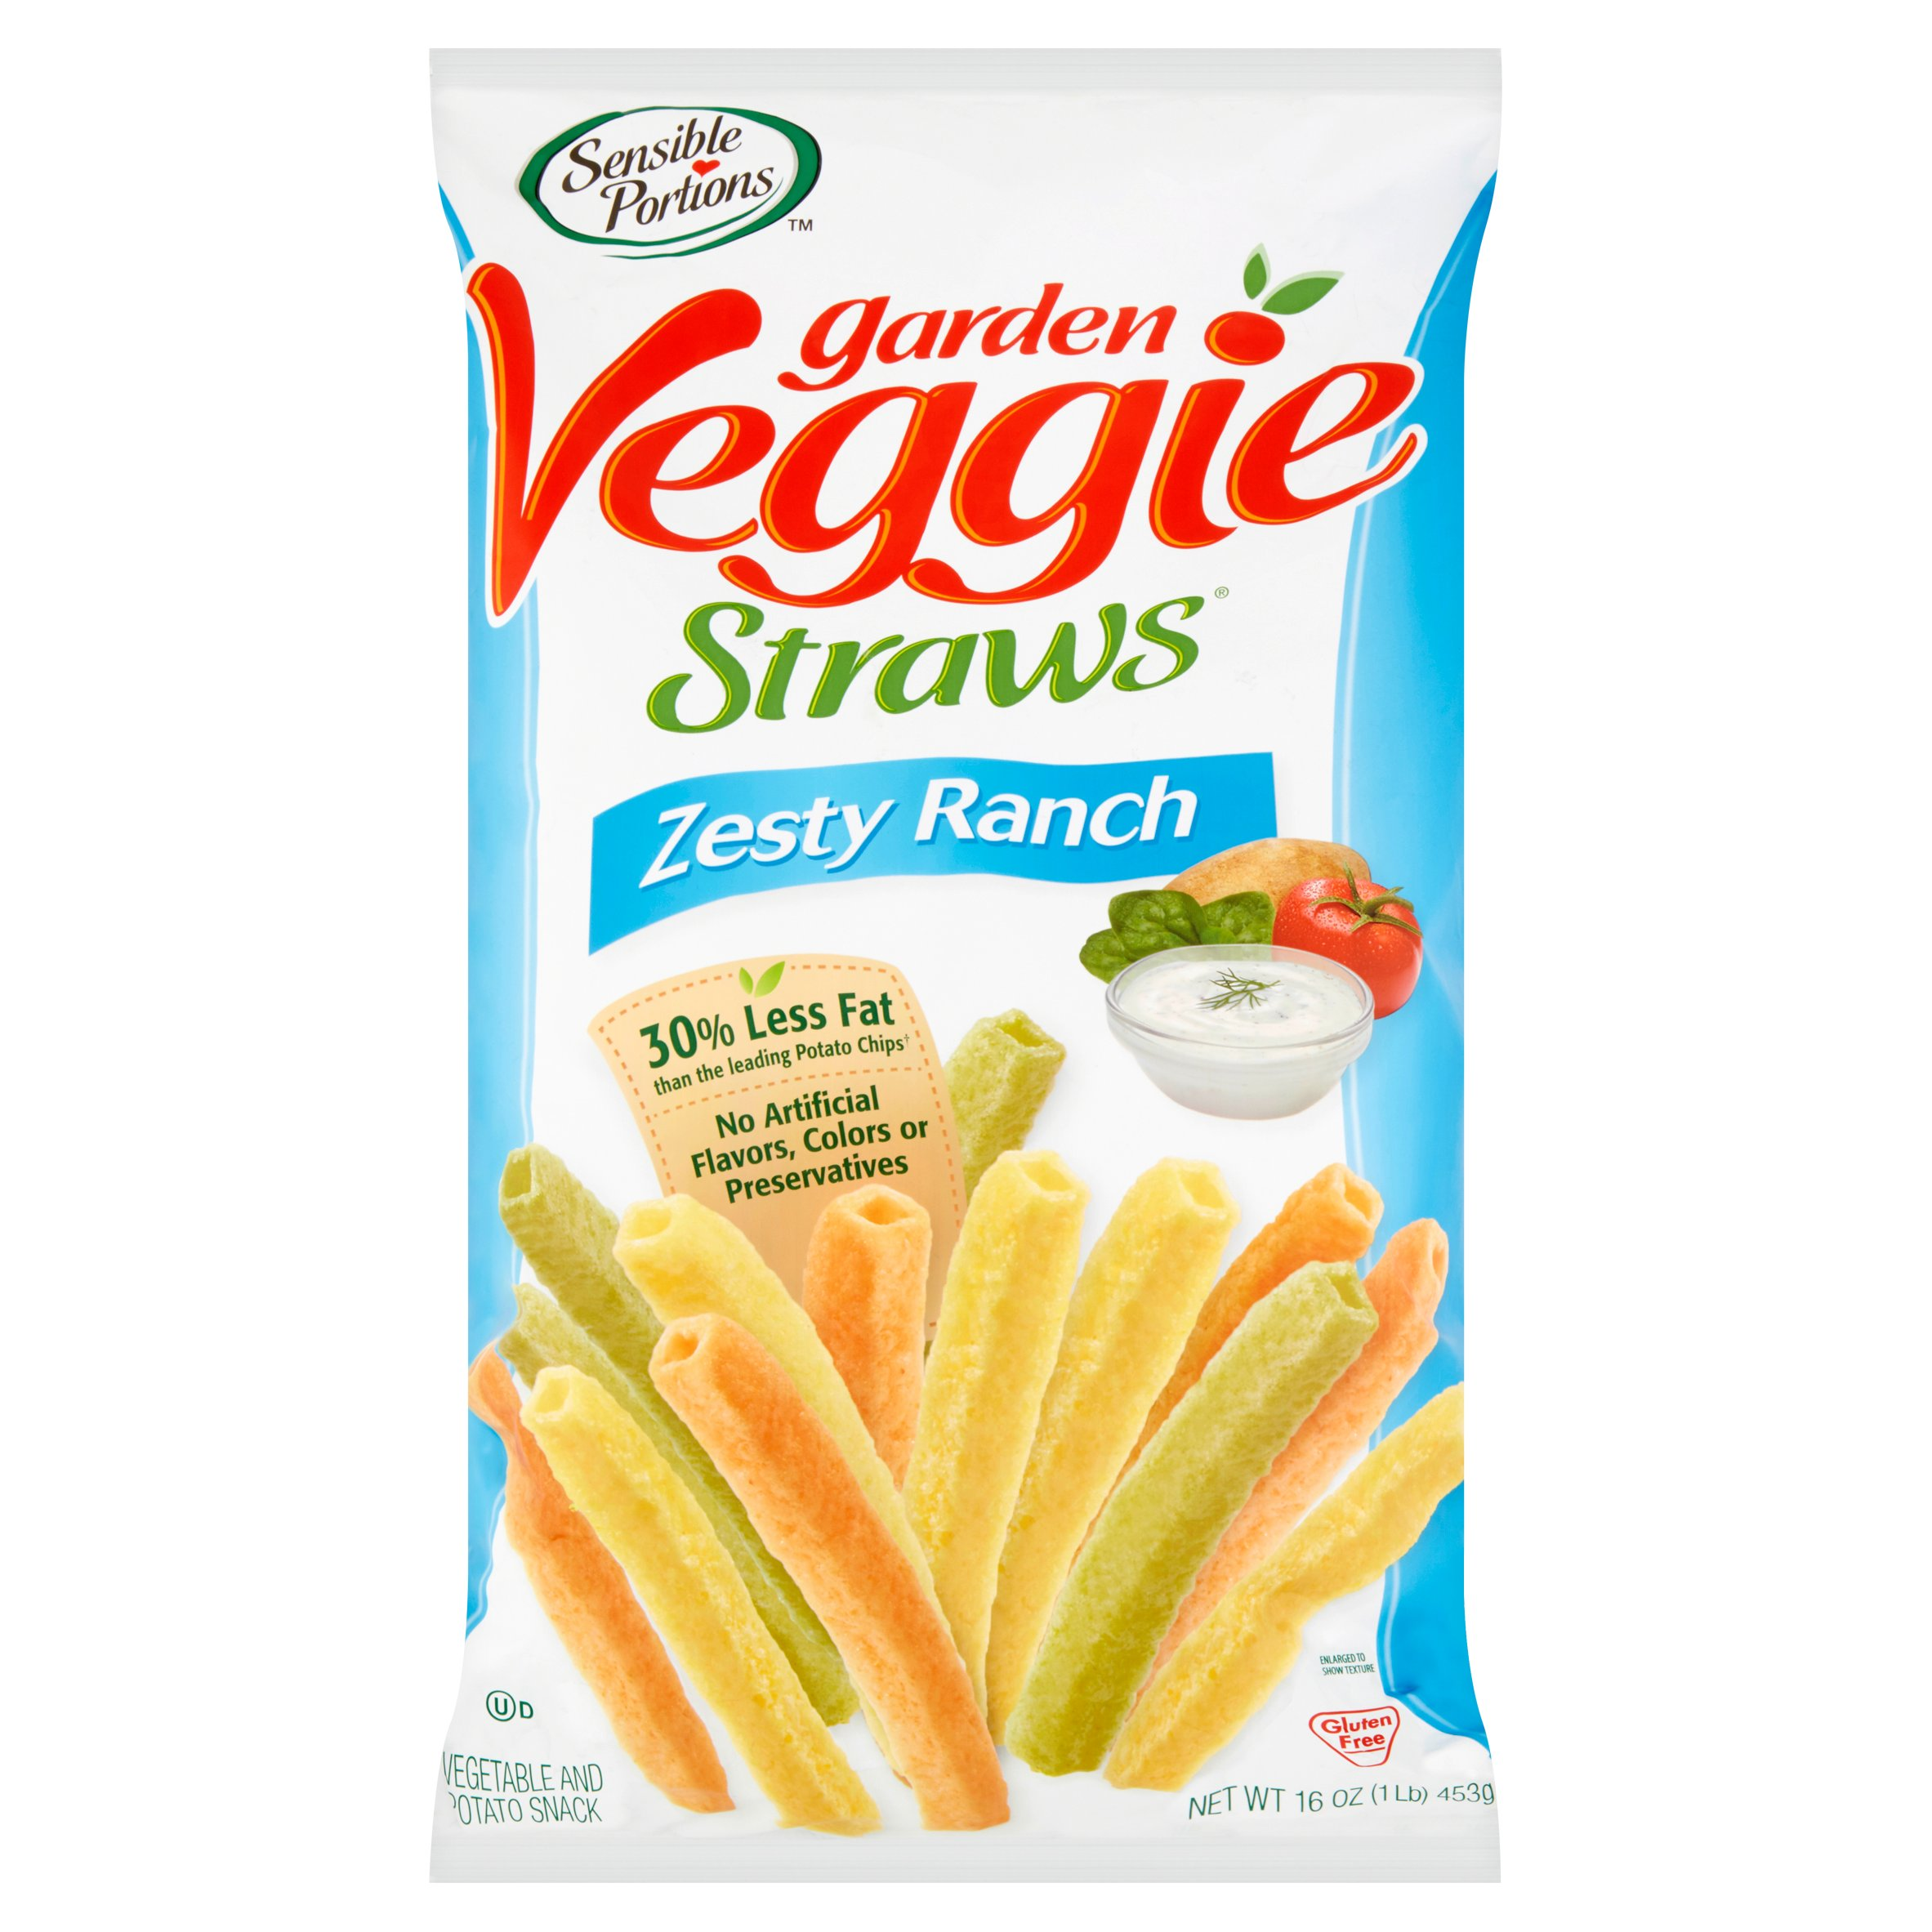 Sensible Portions Zesty Ranch Garden Veggie Straws, 16 oz